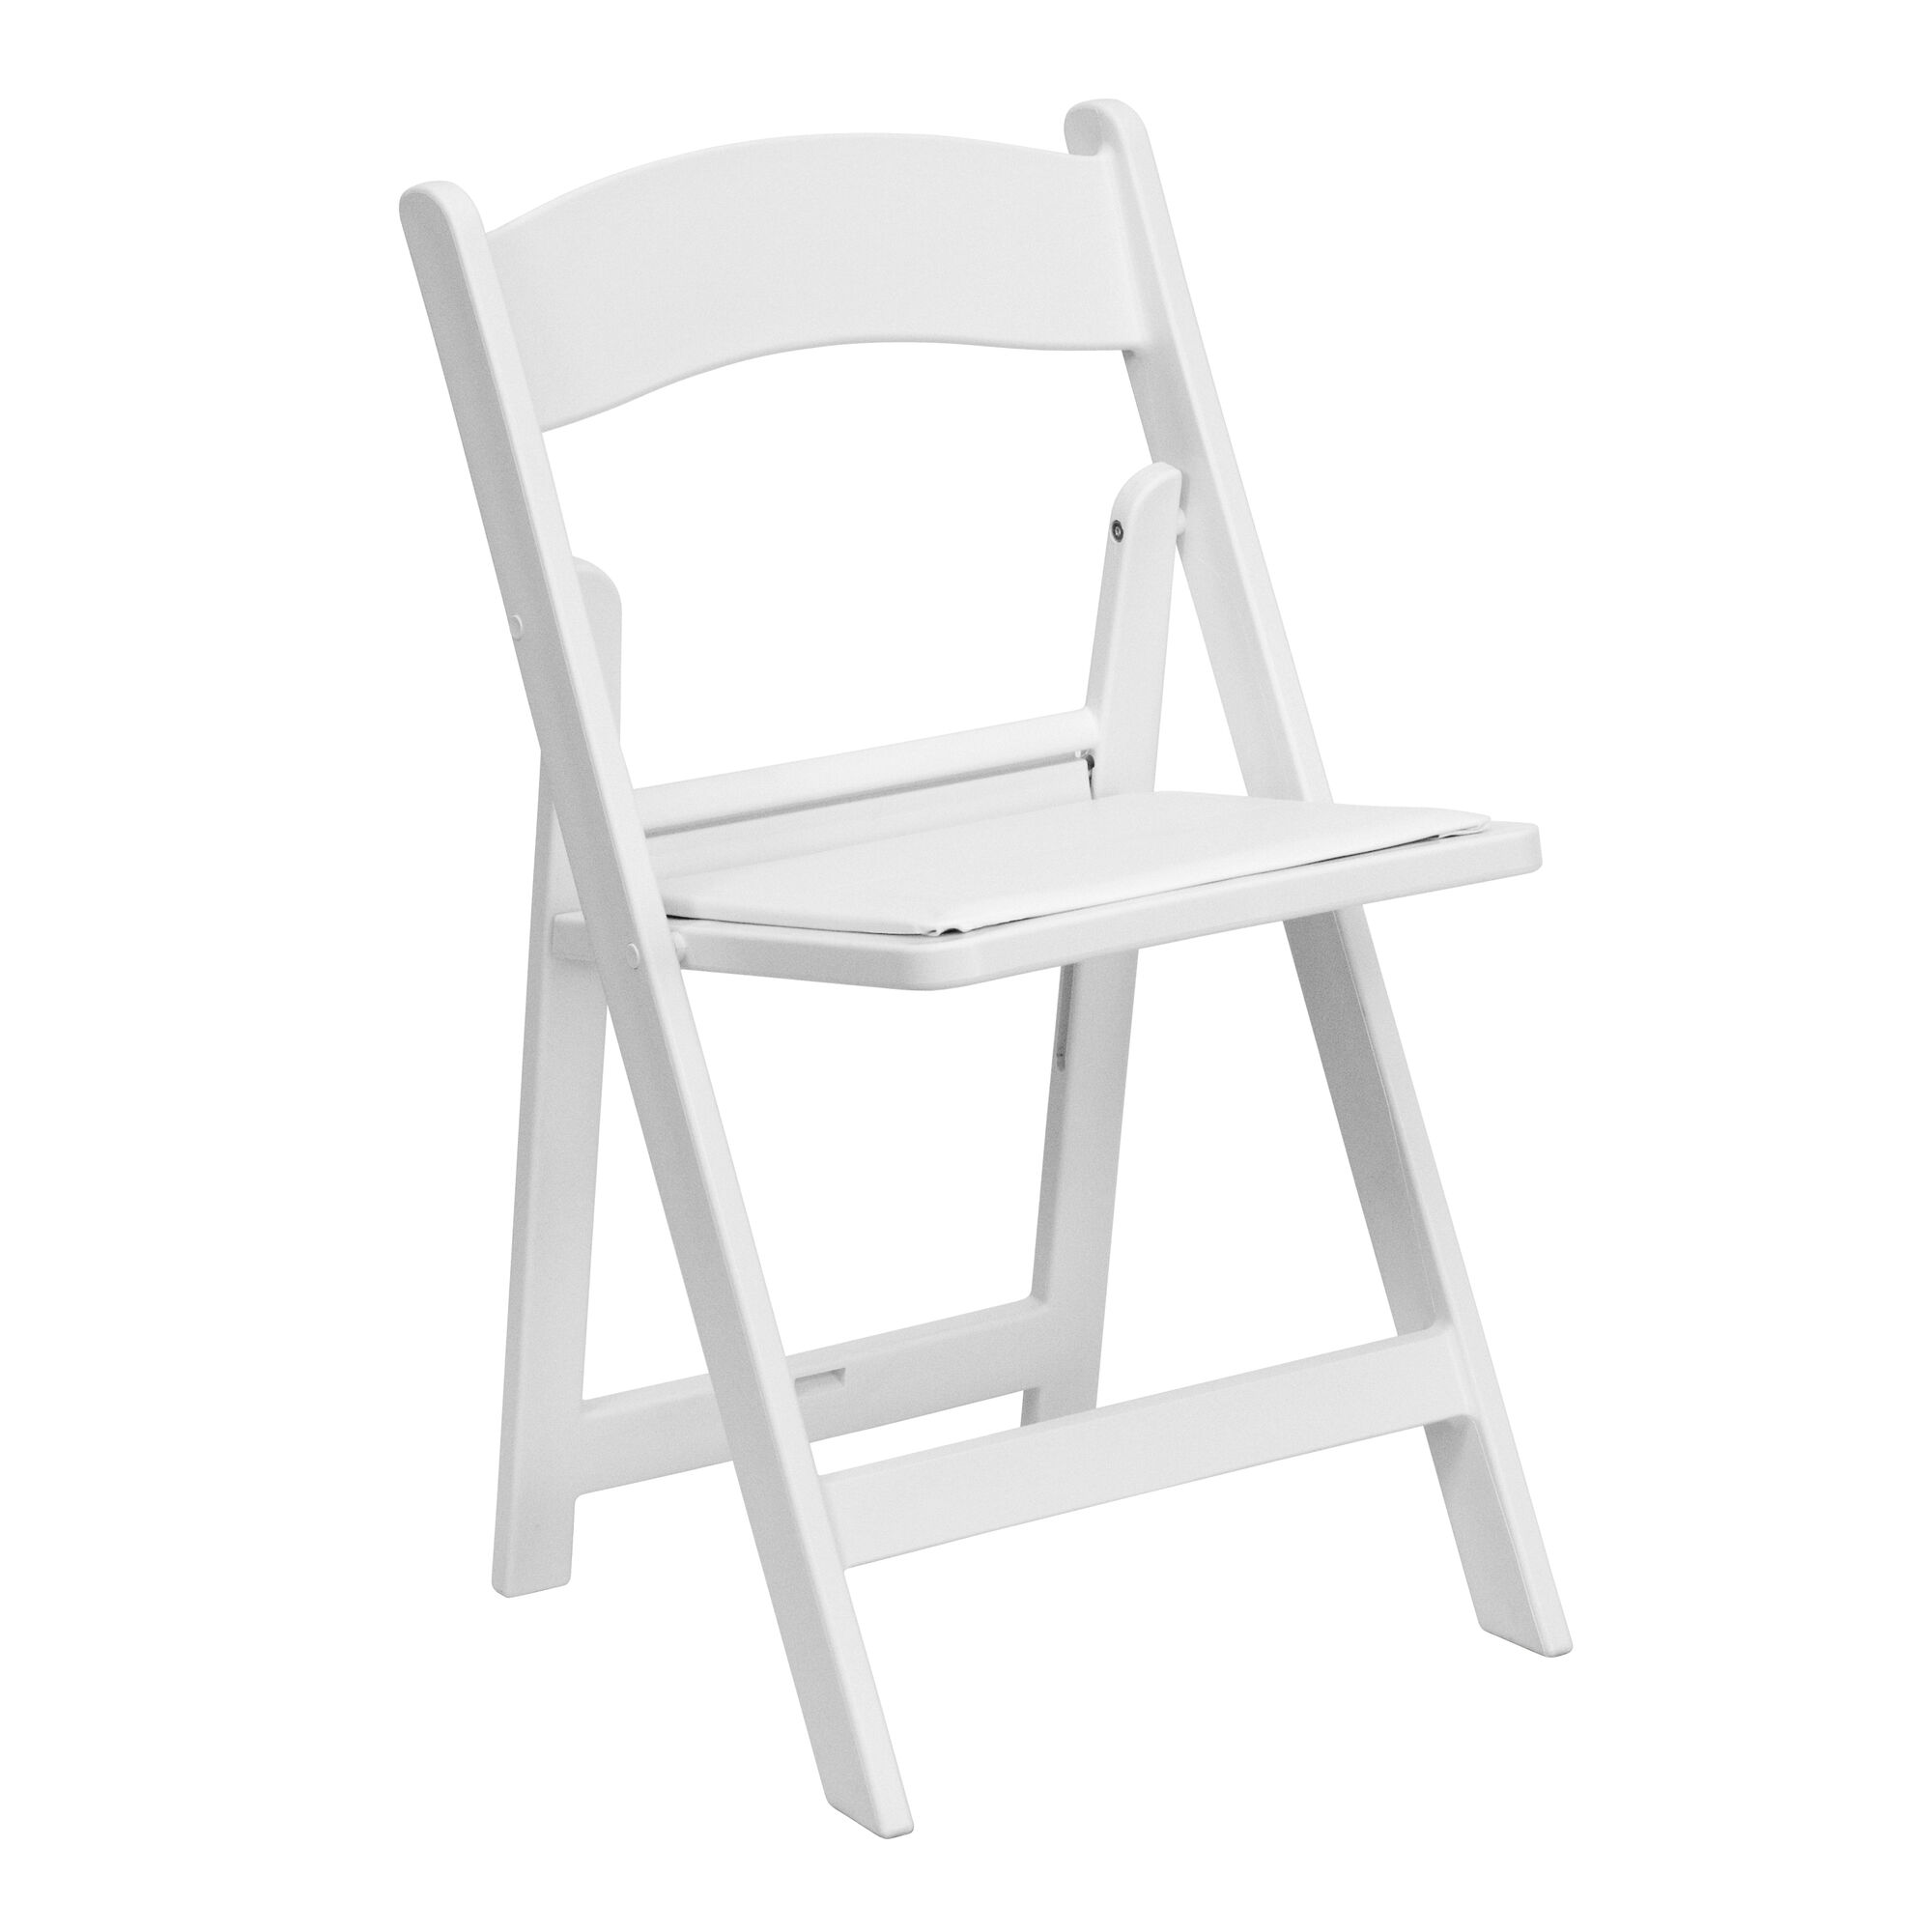 Fabulous Hercules Series 1000 Lb Capacity White Resin Folding Chair With White Vinyl Padded Seat Machost Co Dining Chair Design Ideas Machostcouk